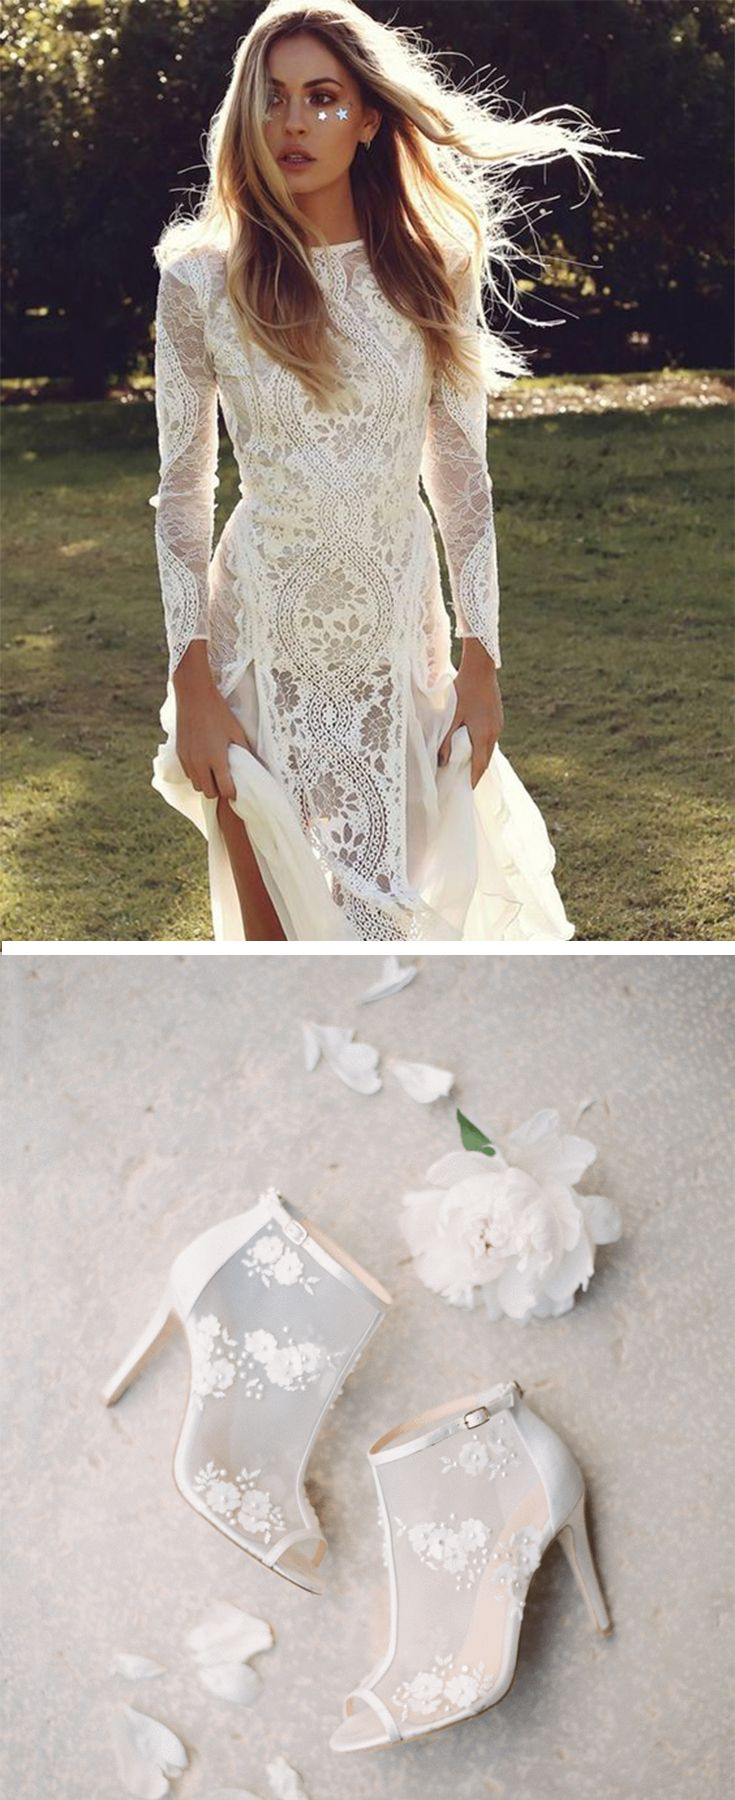 We Love Grace Loves Lace Boho Simple Vintage Wedding Dress With Sleeves Bridal That's Flowly And Romantic Pair Bella Belle Flower Embellished: Wedding Dress With Booties At Websimilar.org